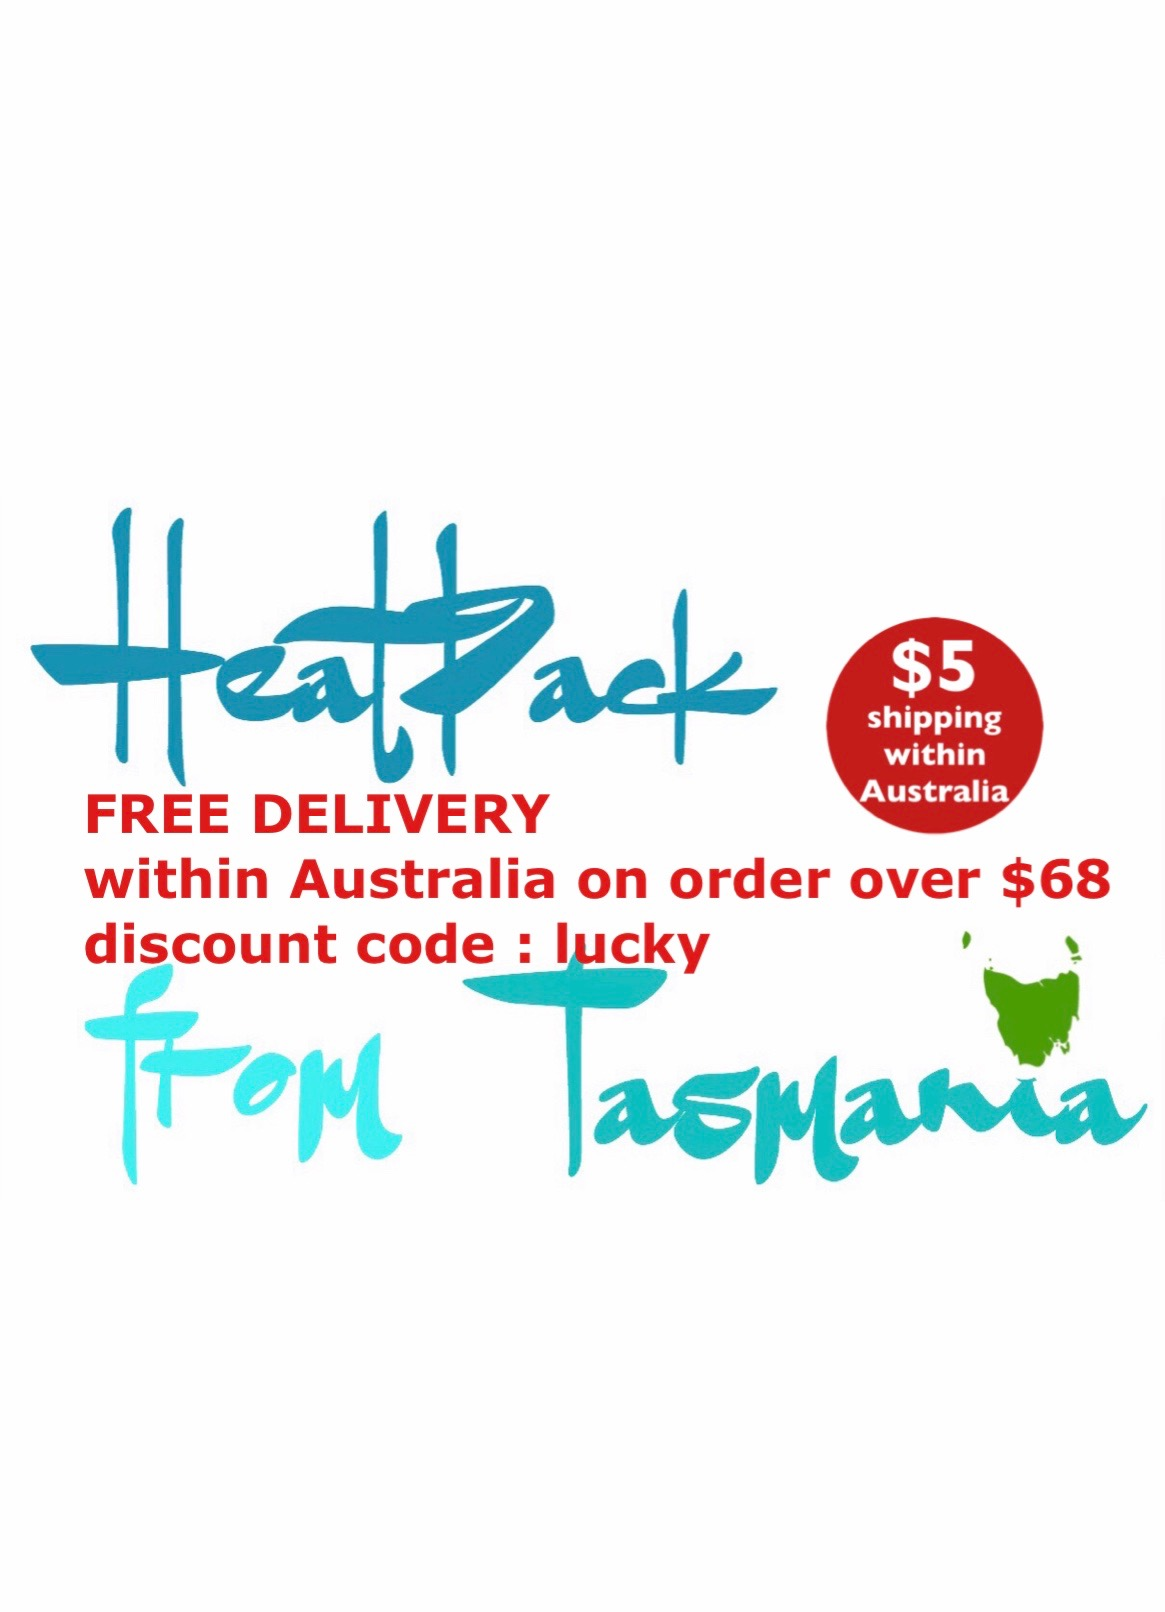 HeatPack from Tasmania